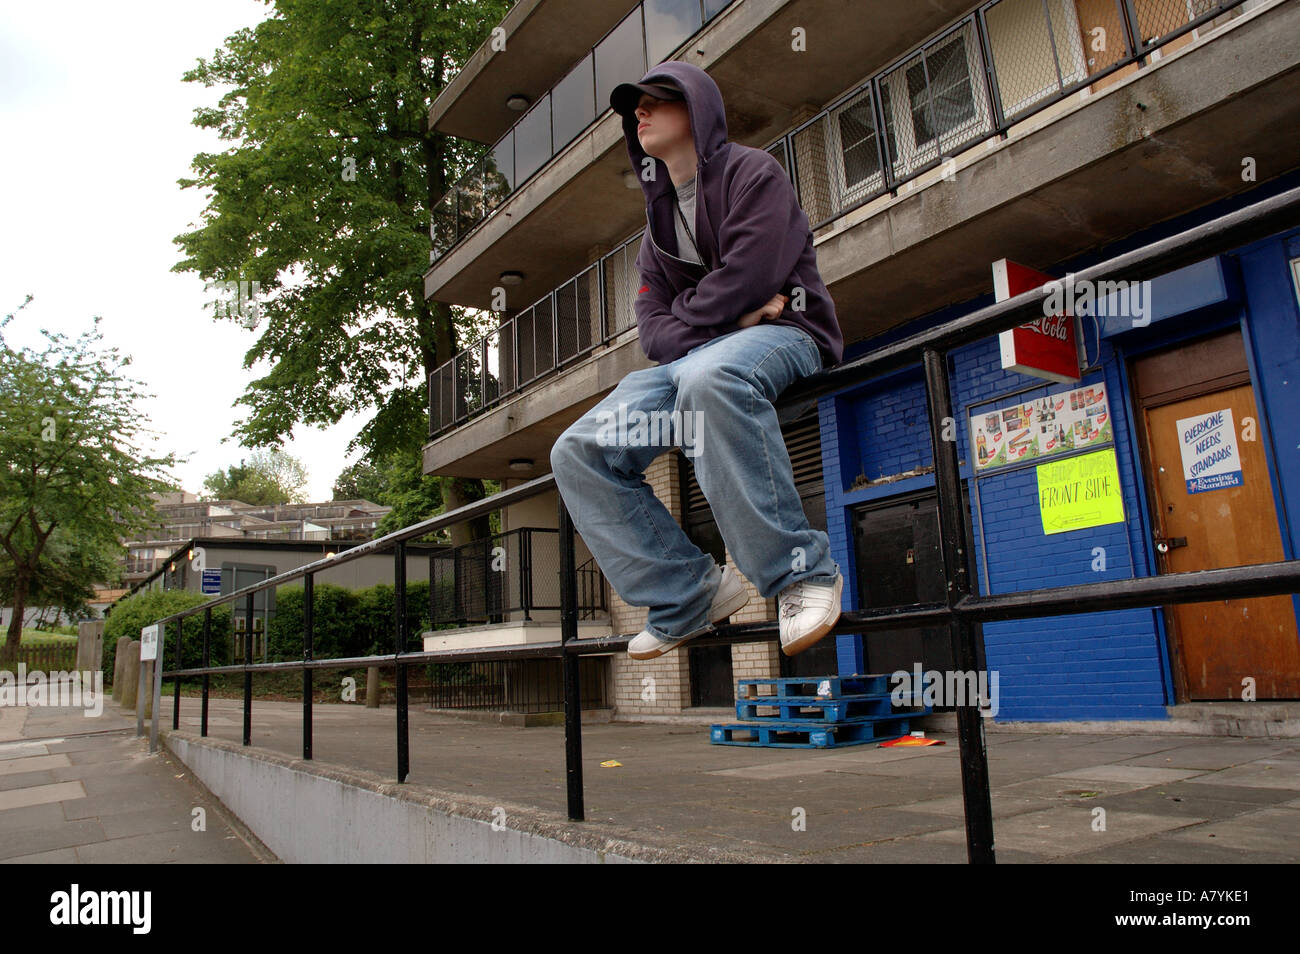 Young boy hanging around the streets dressed in hoodie looking threatening and bored. - Stock Image